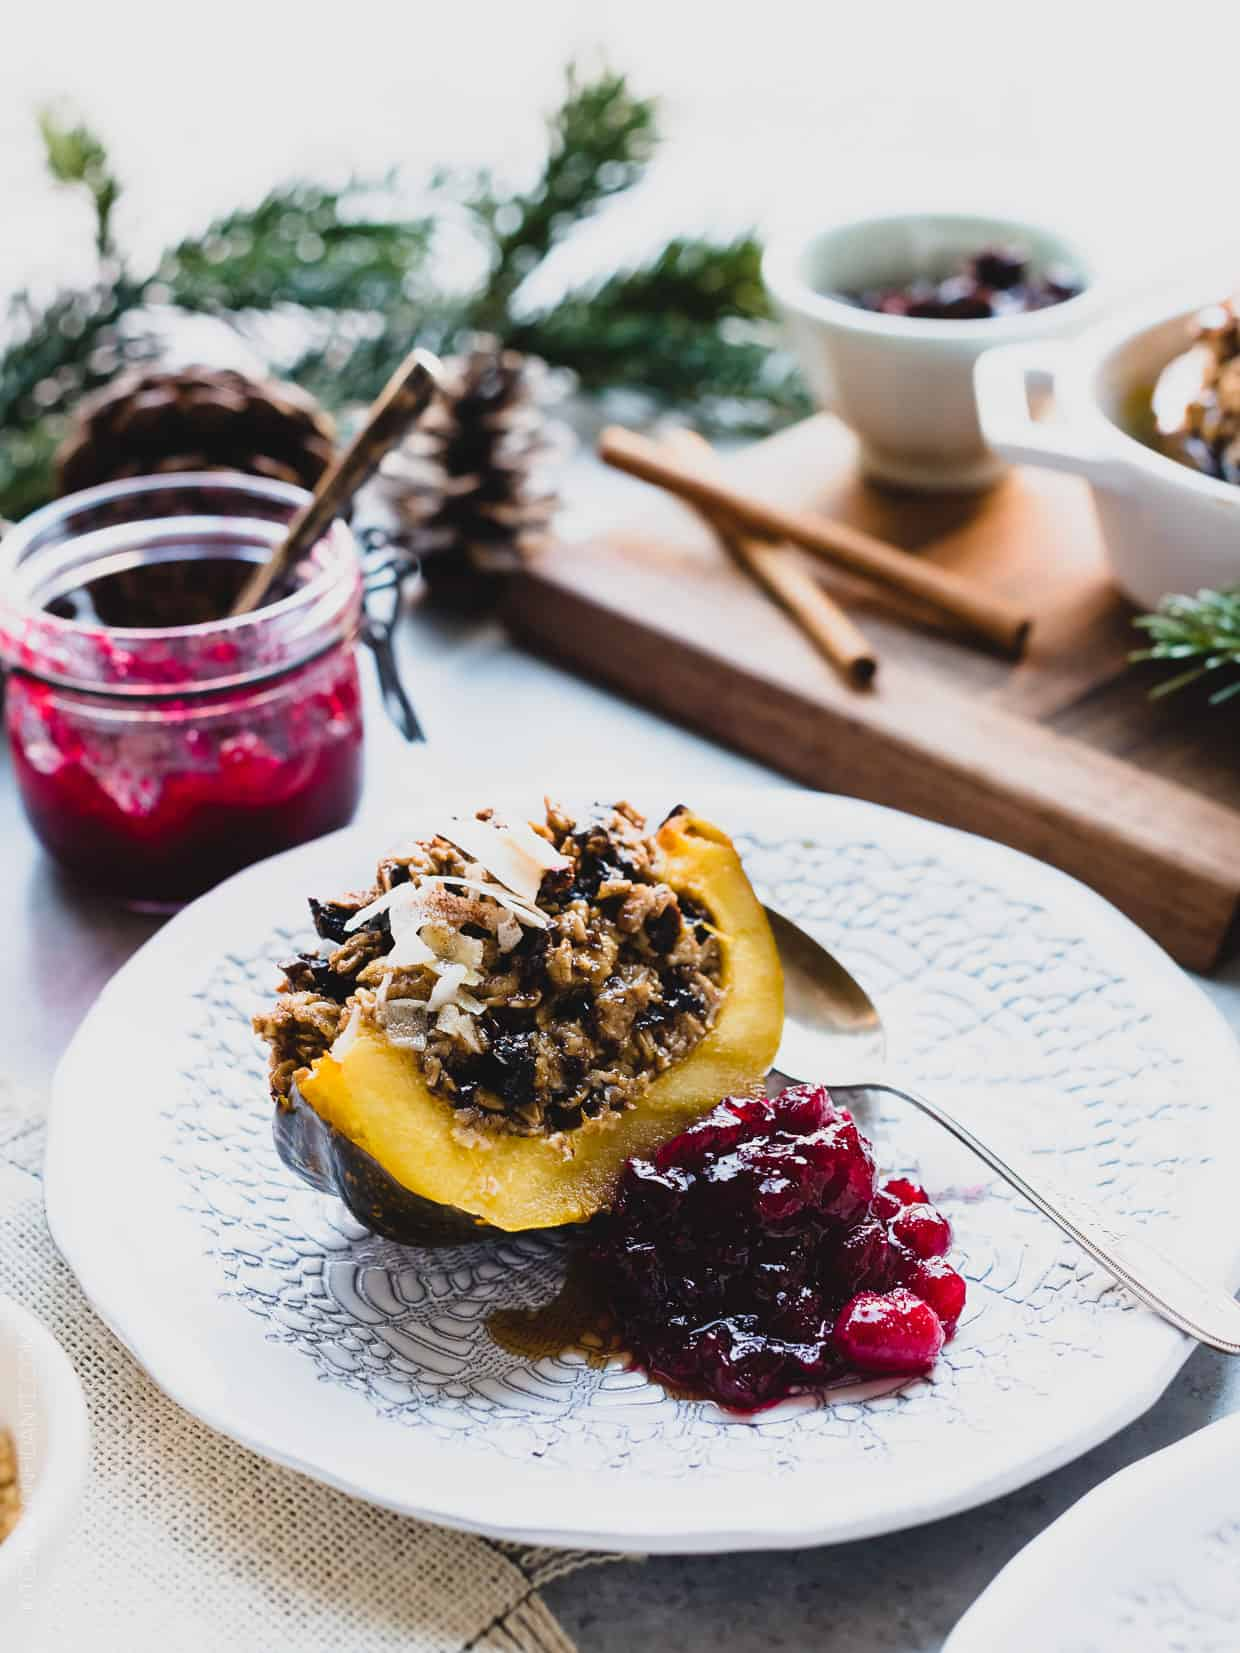 Slice of Baked Oatmeal Stuffed Acorn Squash on a white plate served with cranberry sauce on the side and an additional jar of cranberry sauce in the background.